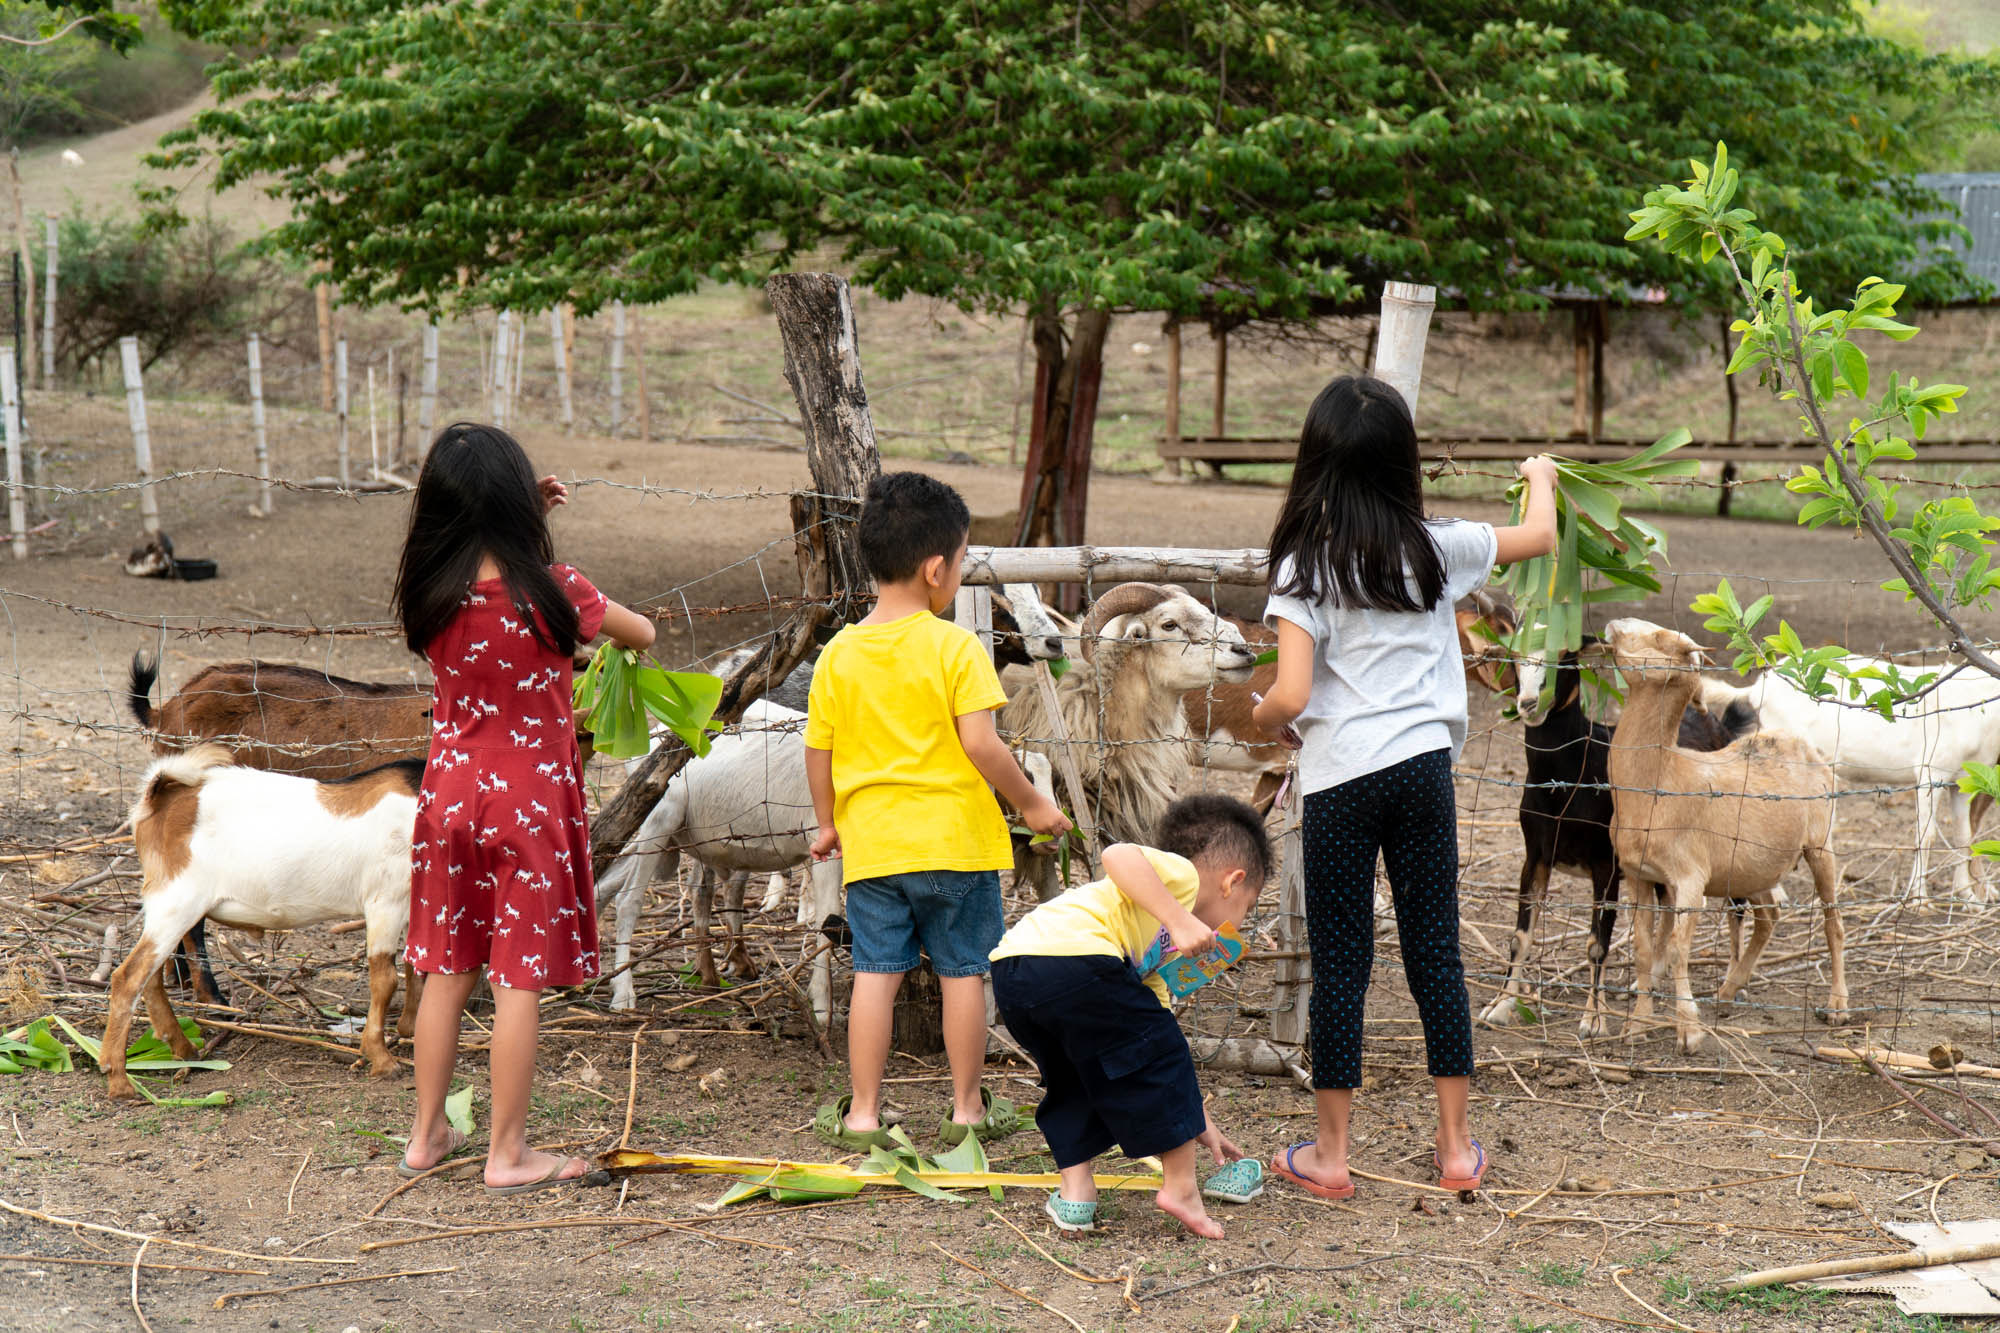 It seemed like there was no specific time for feeding as the manongs stopped whatever they were doing whenever the kids asked for some leaves for the goats.